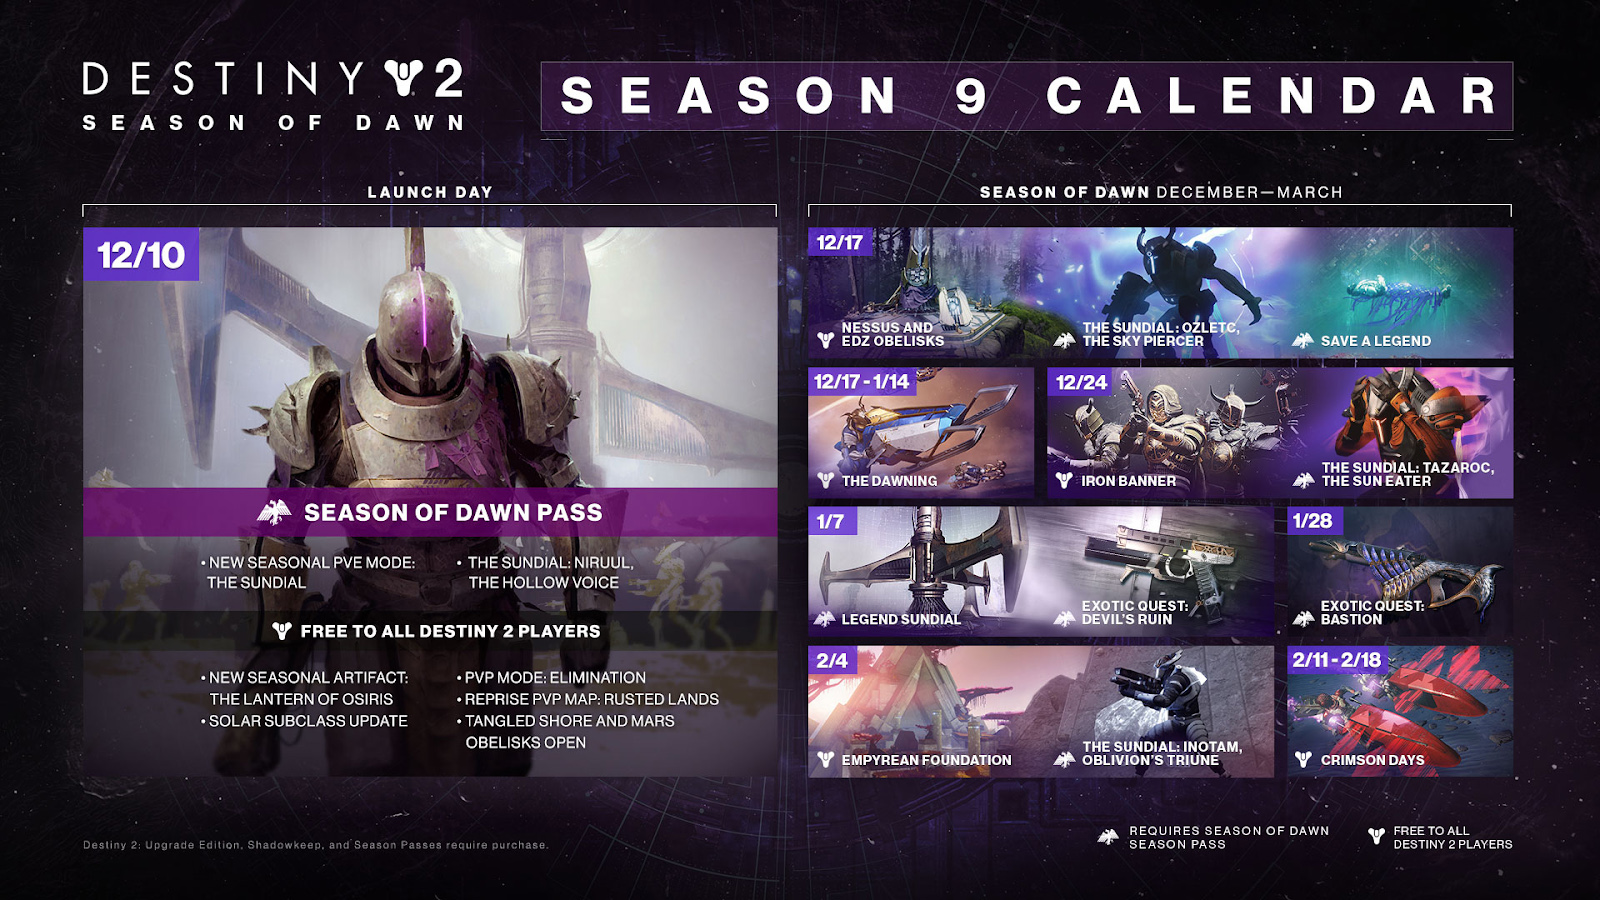 Season of Dawn Calendar